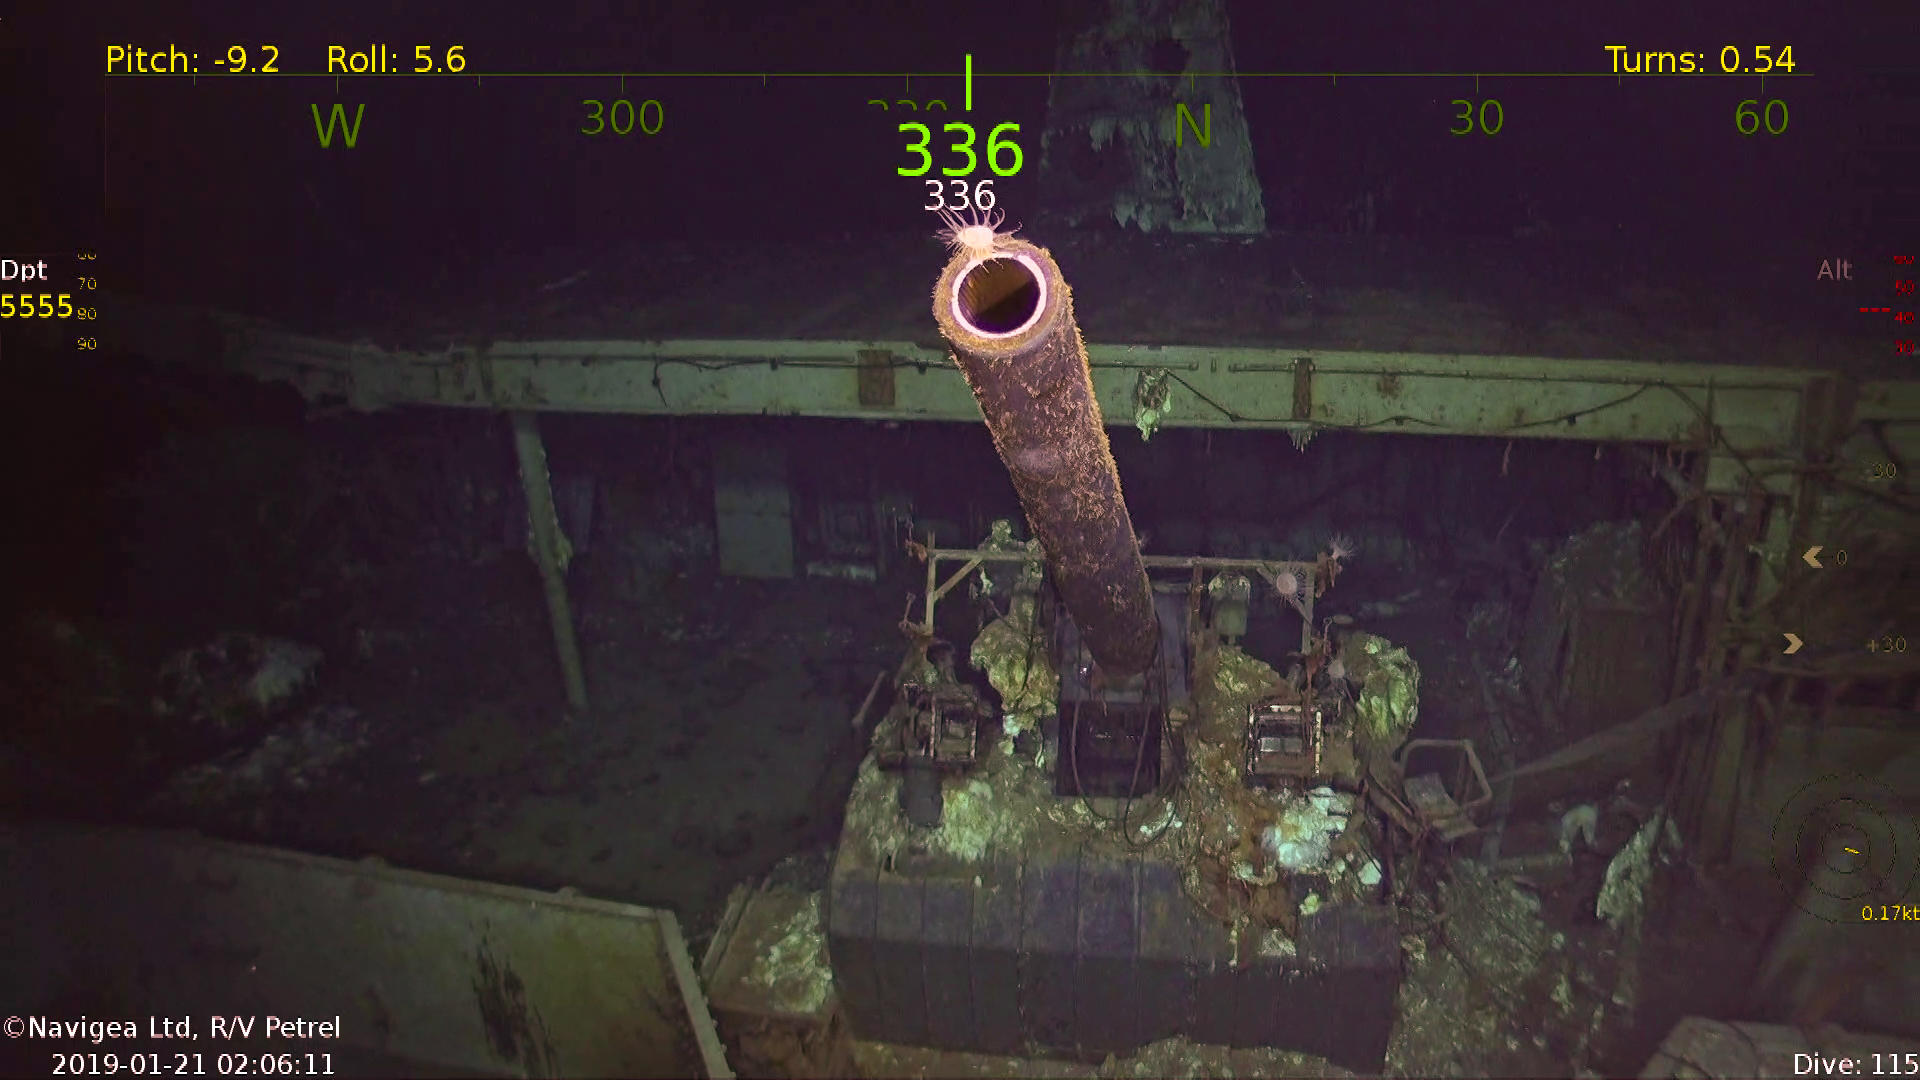 WWII aircraft carrier that set sail from Alameda discovered at